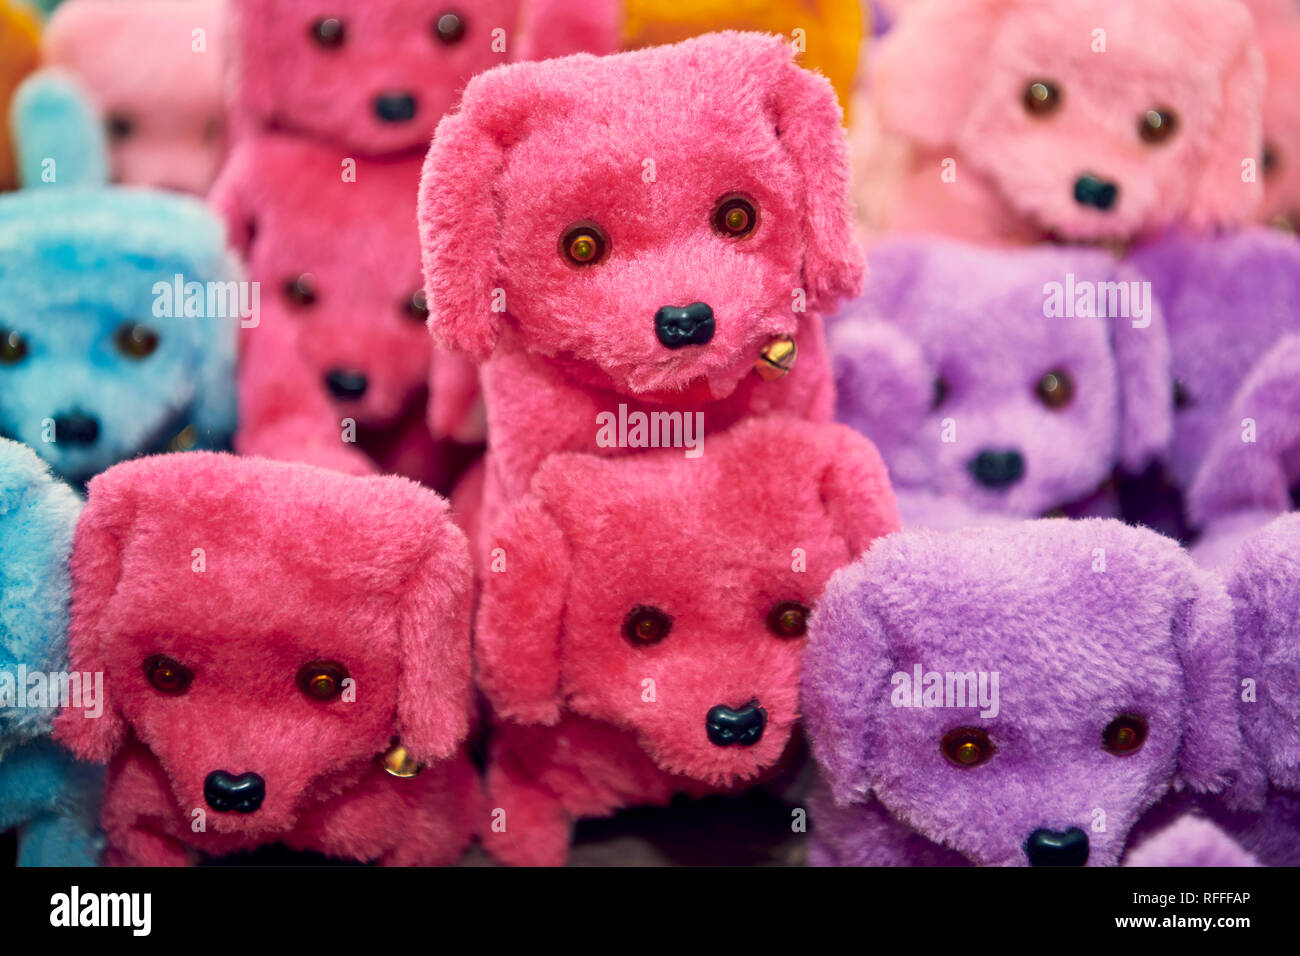 Small cute group of stuffed toy dogs in different colors - Stock Image